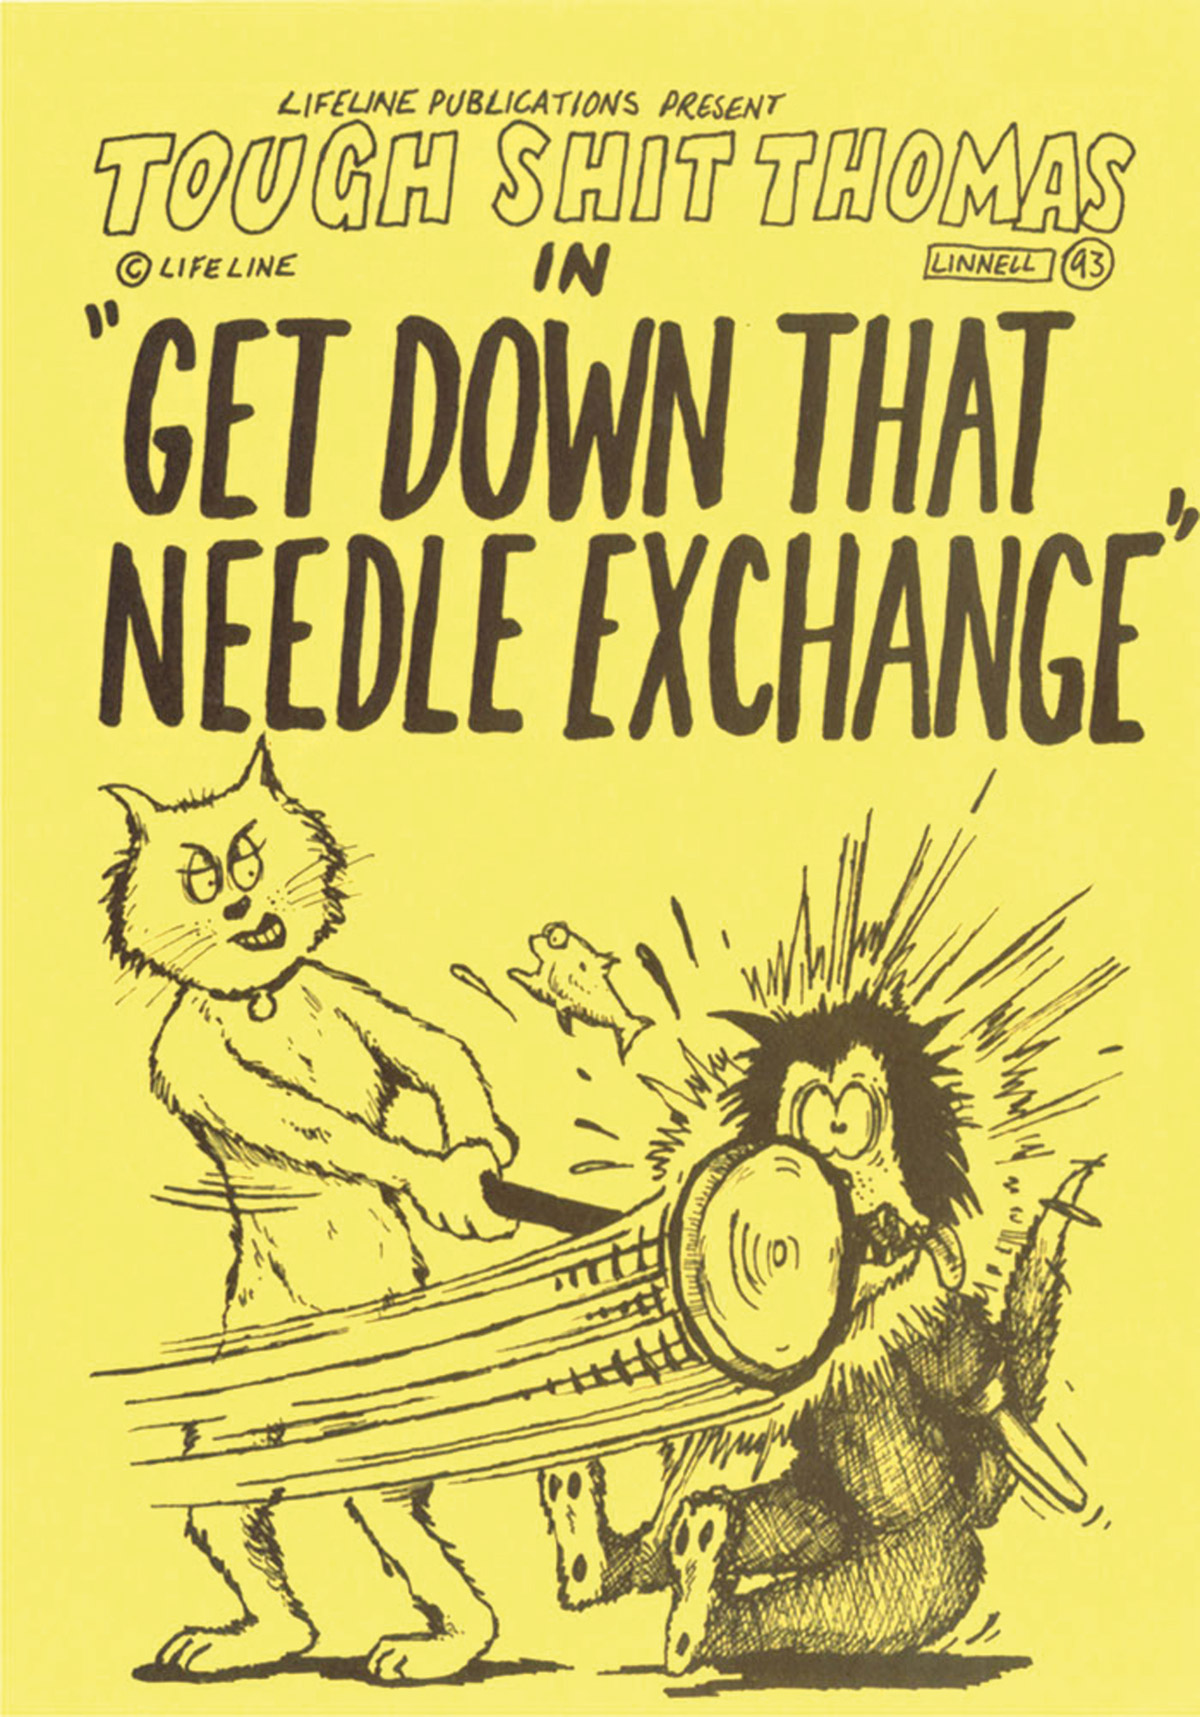 Lifeline, Get Down That Needle Exchange, 1993: Leaflet. Illustration by Michael Linnell © Lifeline.  Image used courtesy of Michael Linnell, who also has an online archive of his drug-related work; http://michaellinnell.org.uk/archive.html